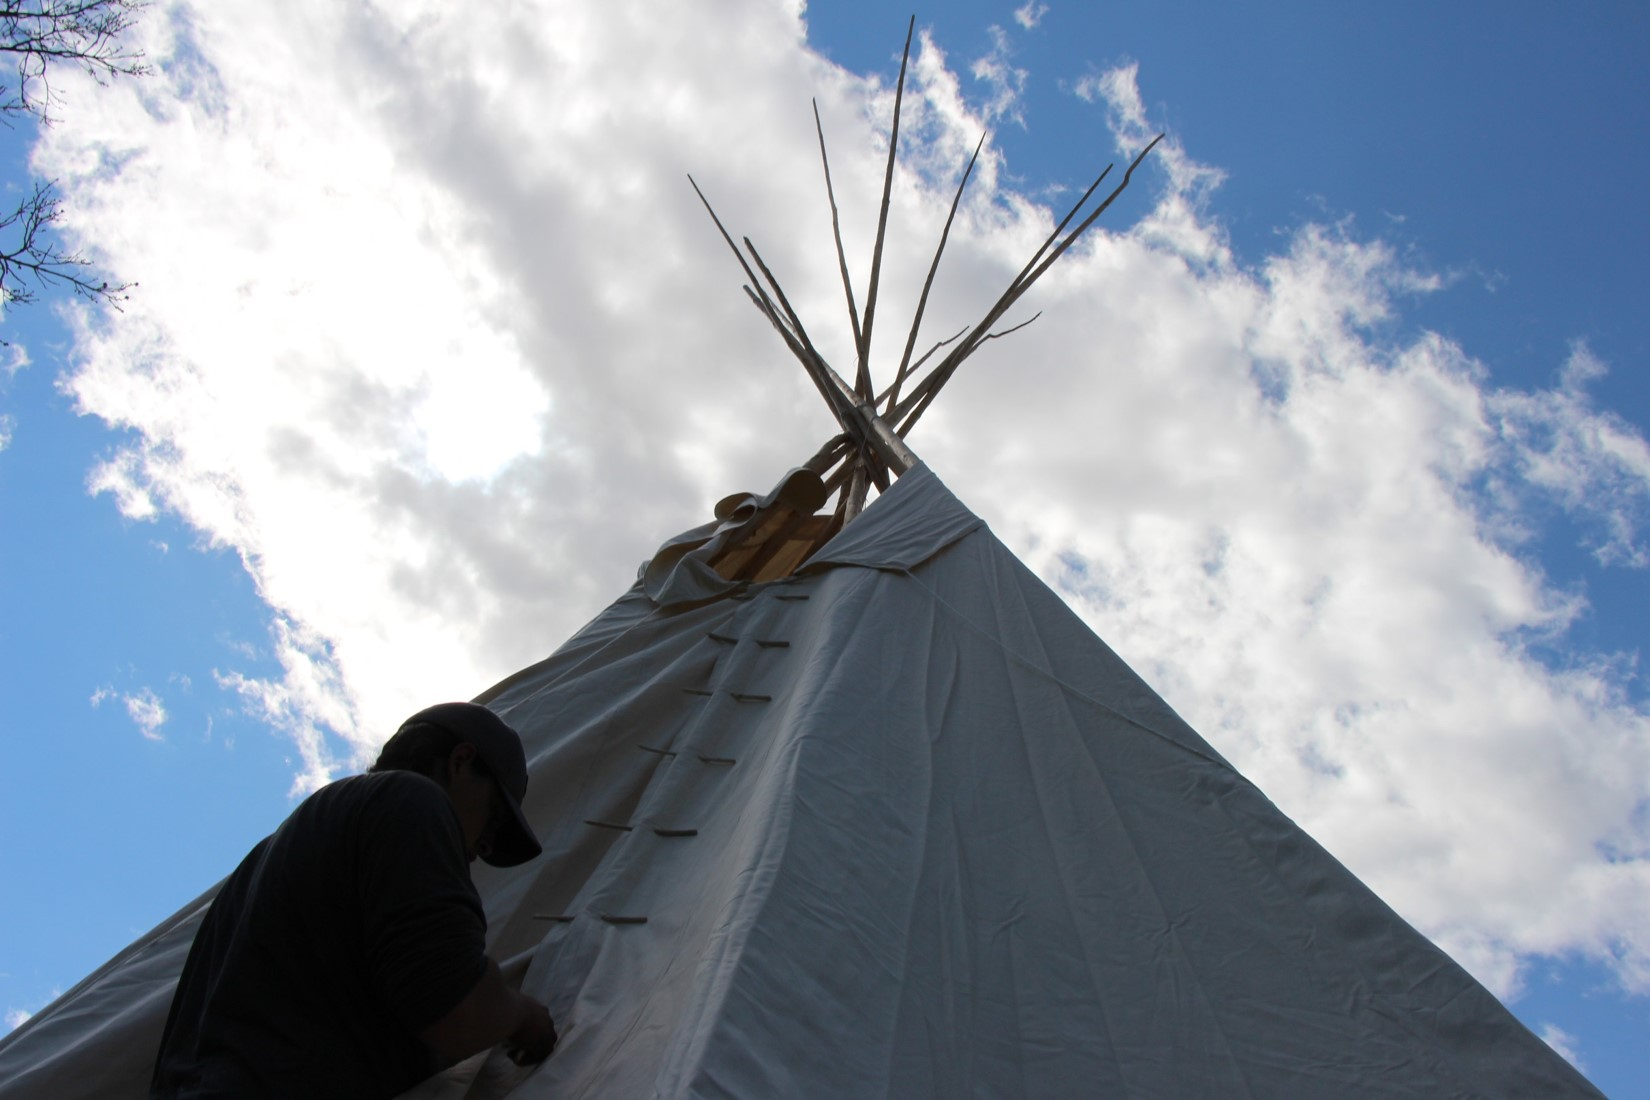 more tipi construction